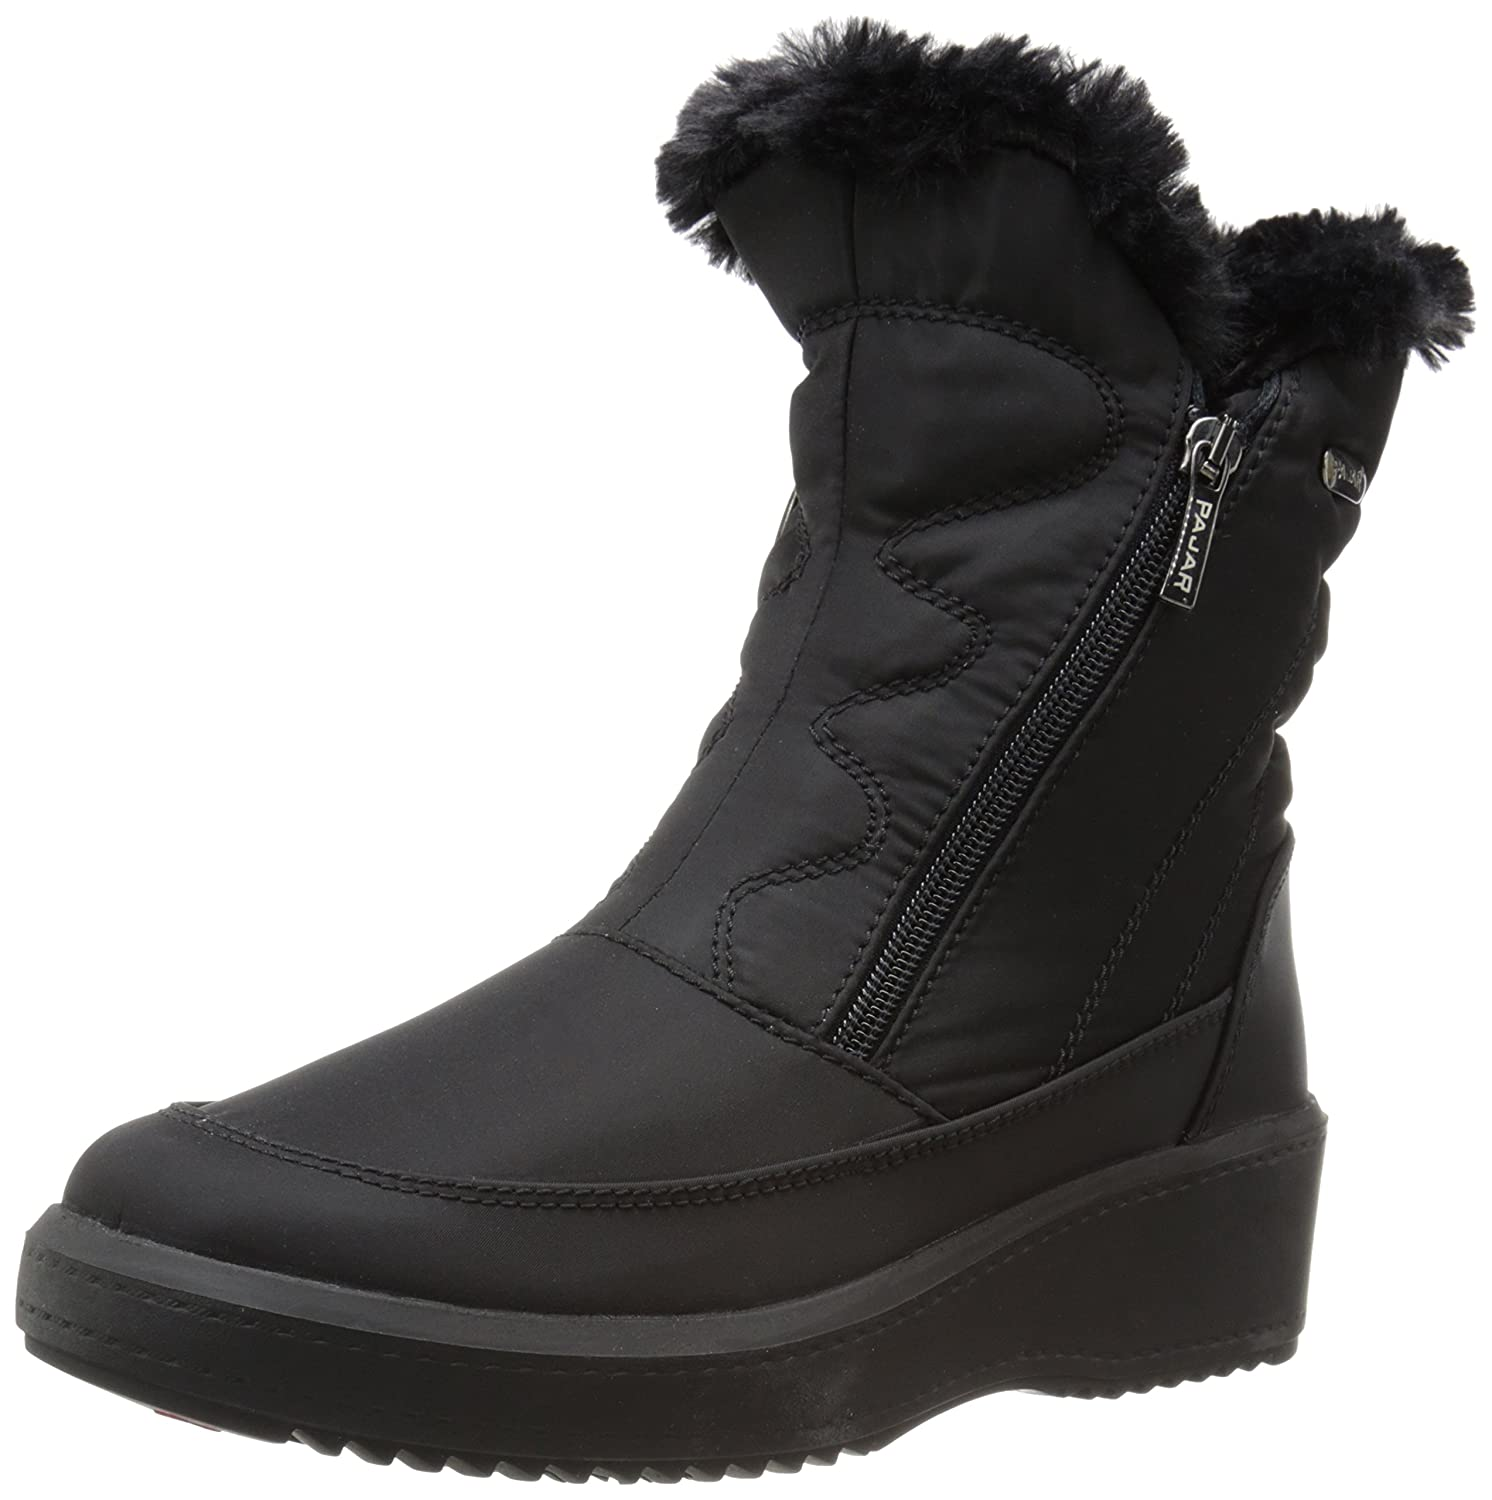 Pajar Women's Veronica Boot B00J4C3ALQ 40 EU/9-9.5 M US|Black